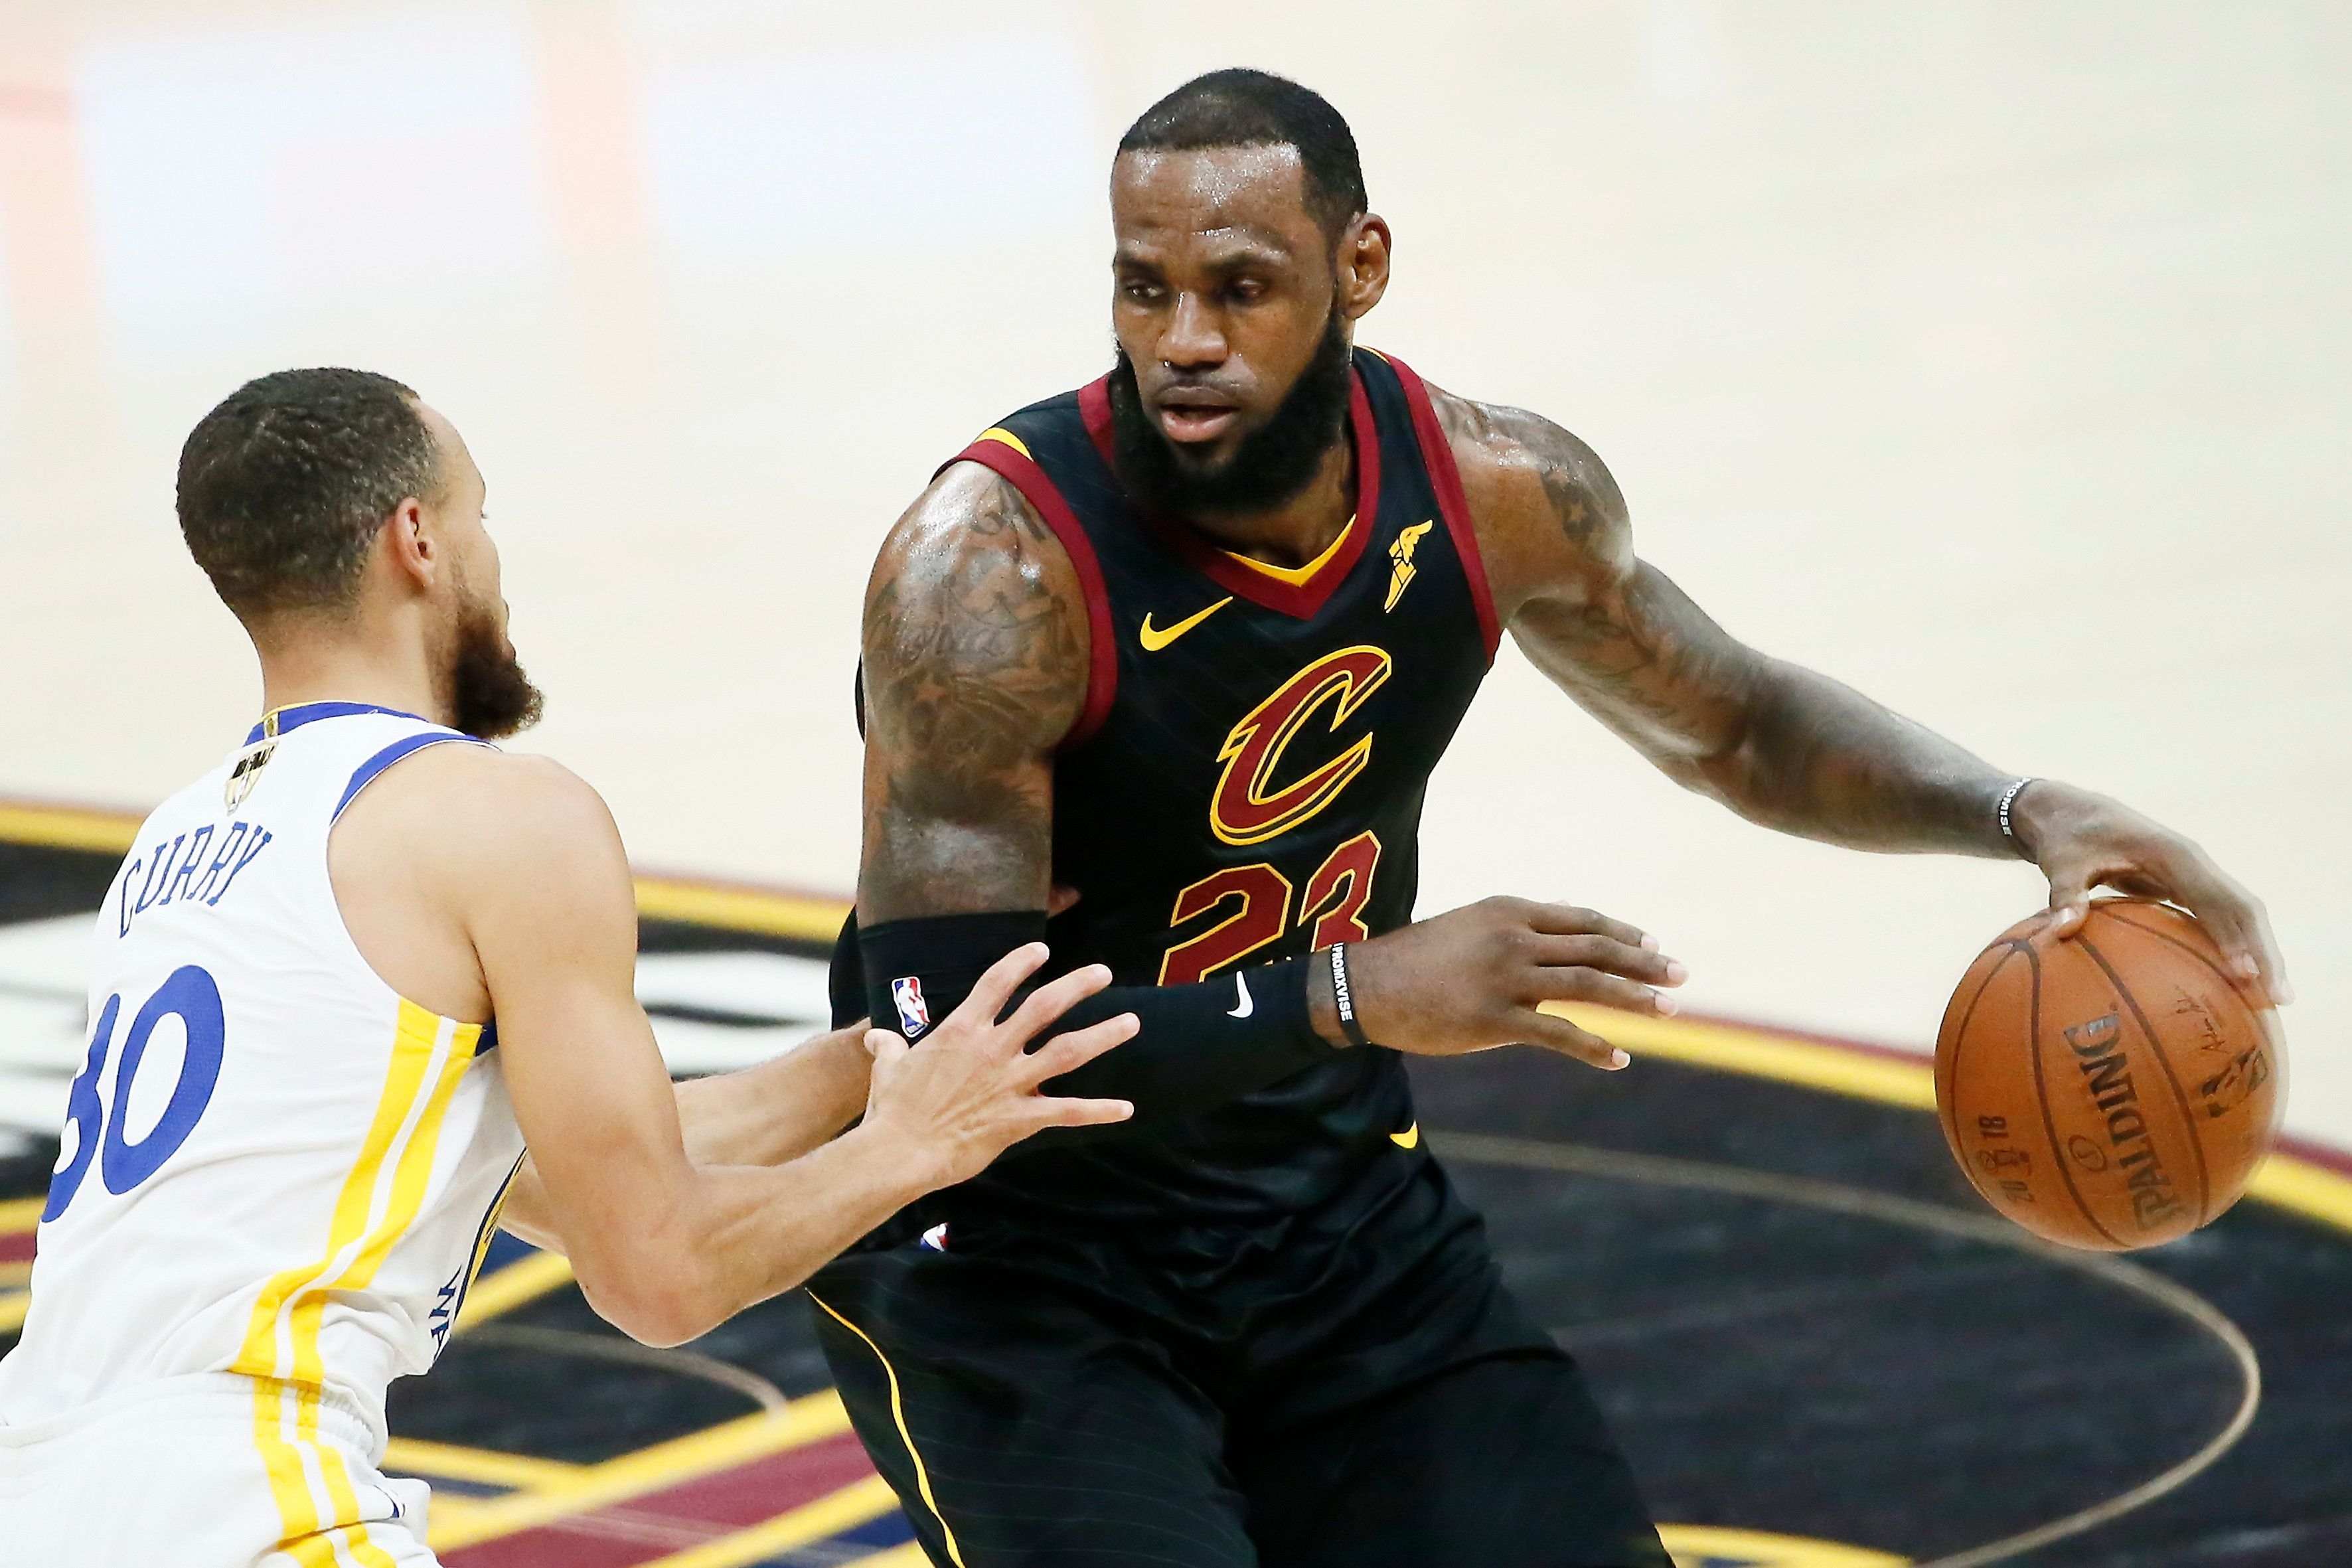 CLEVELAND, CA - JUN 8:  LeBron James #23 of the Cleveland Cavaliers handles the ball against Stephen Curry #30 of the Golden State Warriors in Game Four of the 2018 NBA Finals won 108-85 by the Golden State Warriors over the Cleveland Cavaliers at the Quicken Loans Arena on June 6, 2018 in Cleveland, Ohio. NOTE TO USER: User expressly acknowledges and agrees that, by downloading and or using this photograph, User is consenting to the terms and conditions of the Getty Images License Agreement. Mandatory Copyright Notice: Copyright 2018 NBAE (Photo by Chris Elise/NBAE via Getty Images)